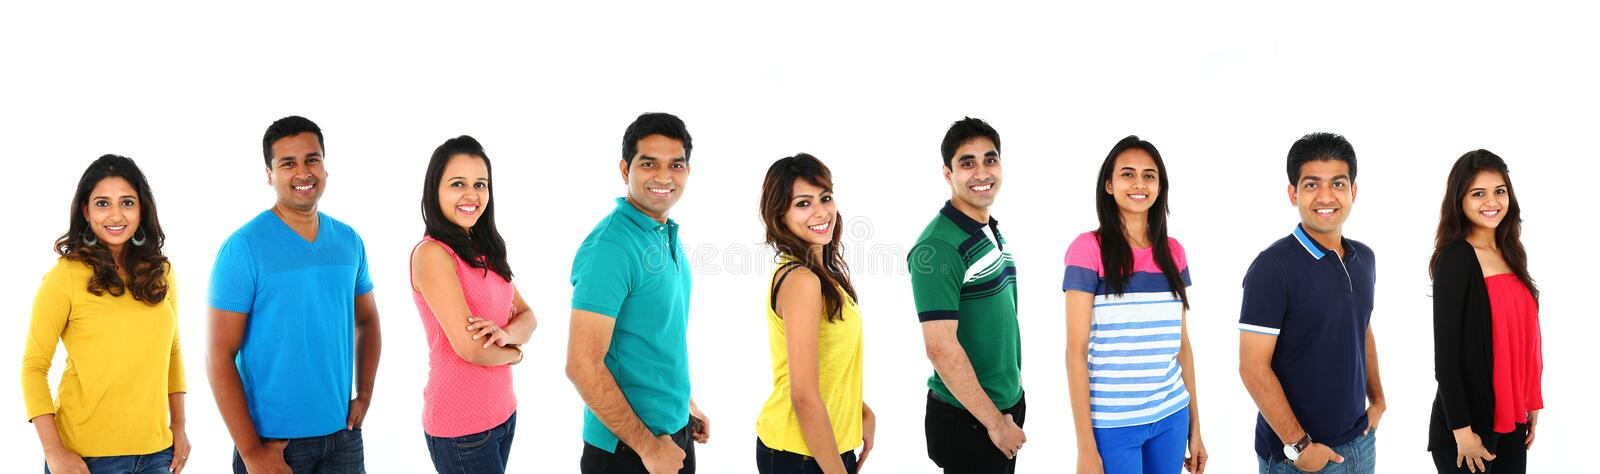 Young Indian/Asian group of people looking at camera, smiling. Isolated on white back royalty free stock photography